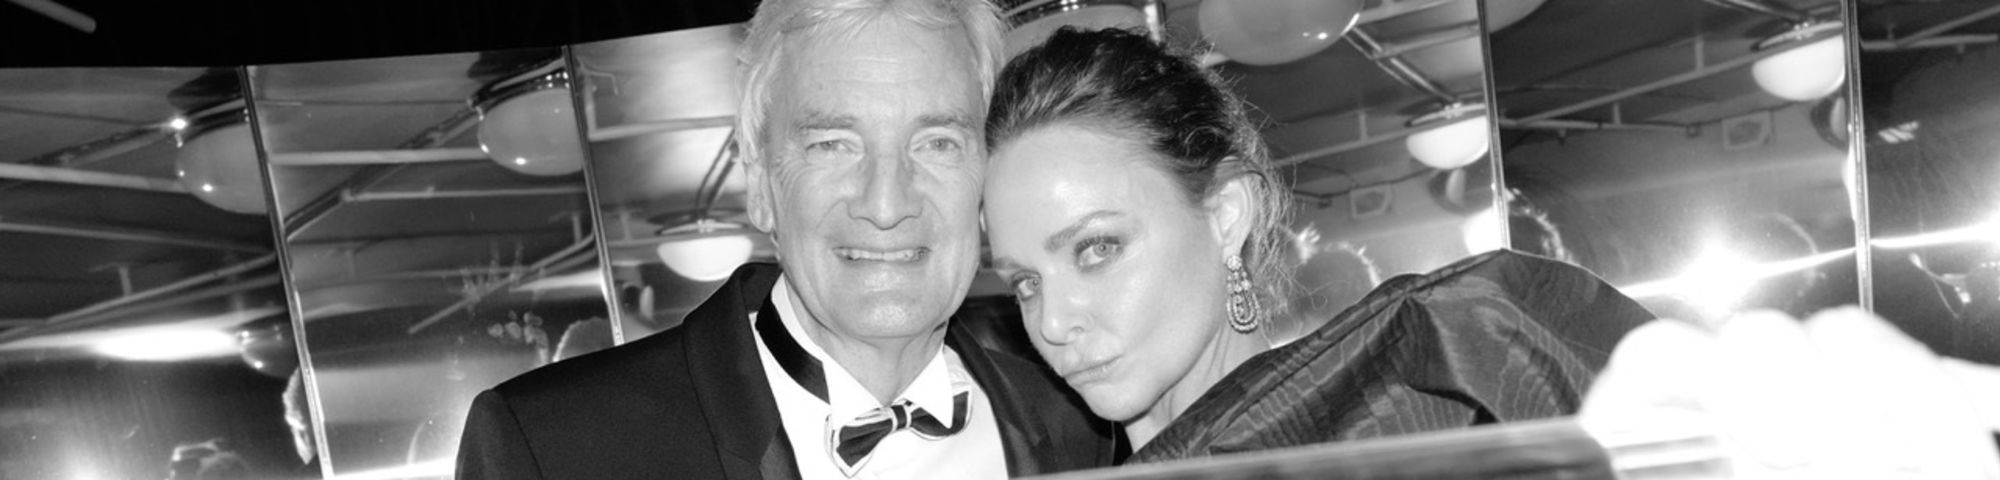 Stella McCartney with James Dyson – credit Getty Images (Greg Williams) (002)